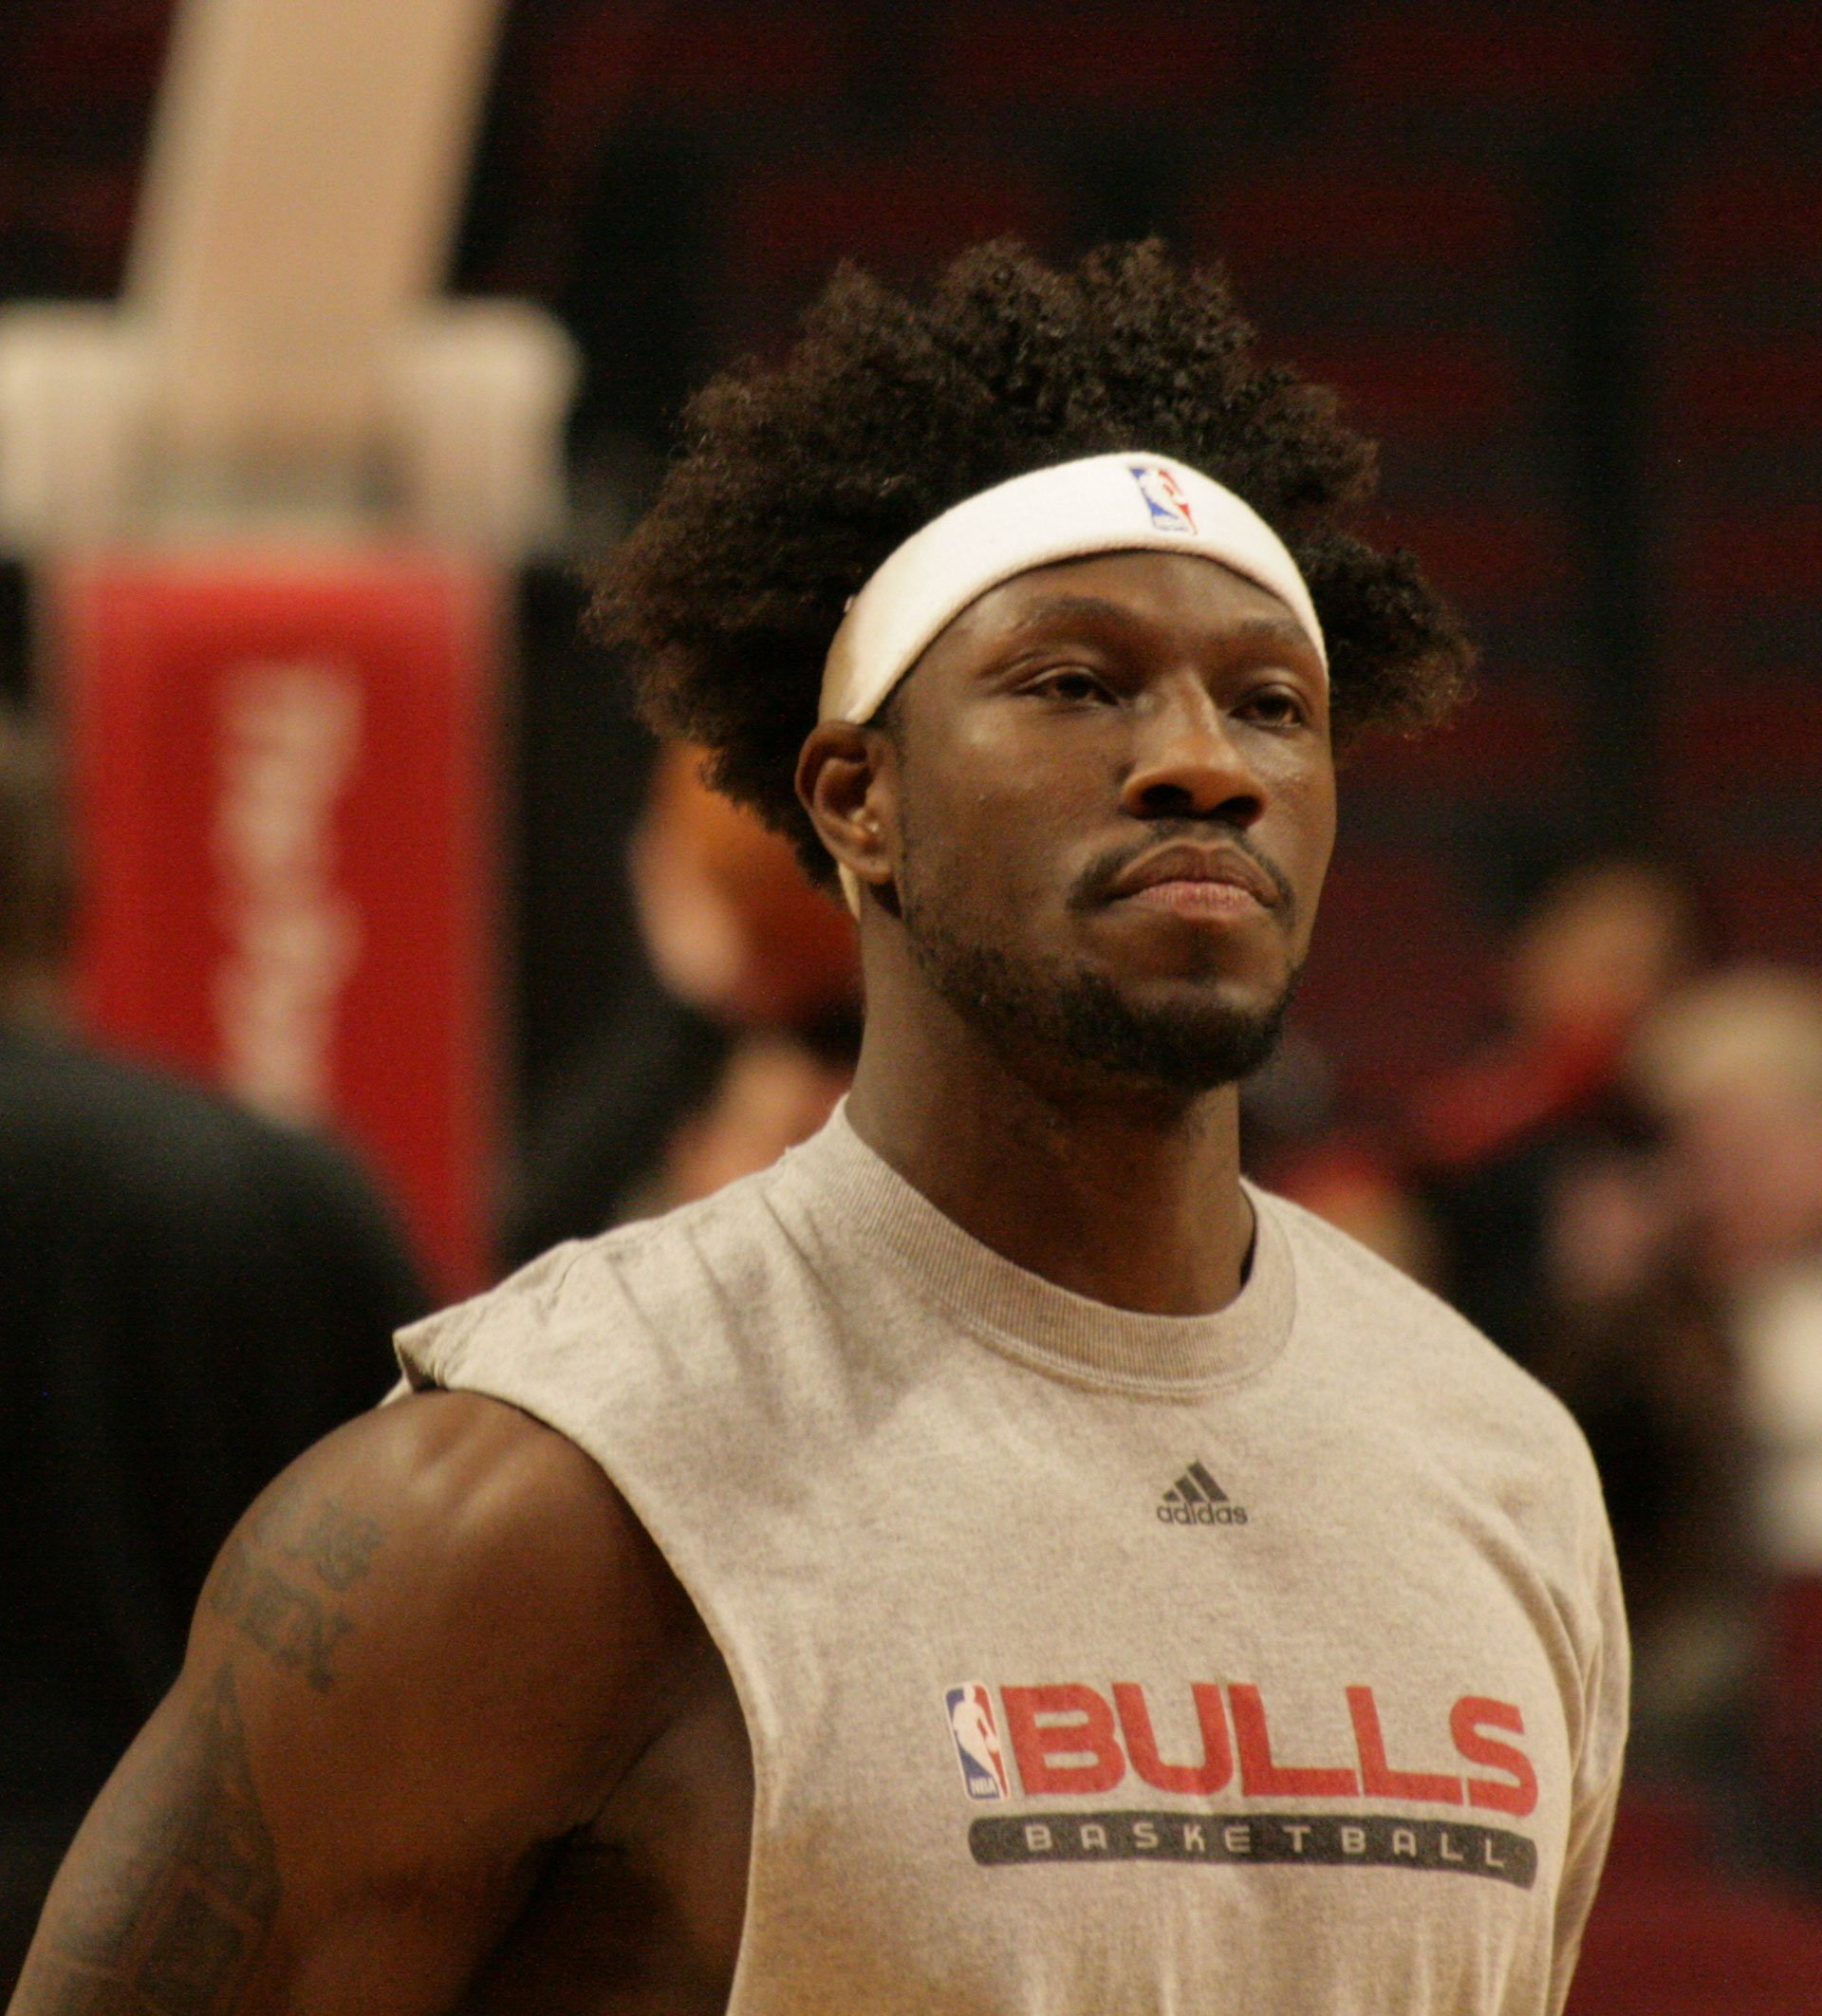 Wallace during his tenure with the Bulls in 2008 | Photo By Jauerback, CC BY-SA 4.0, Wikimedia Commons Images